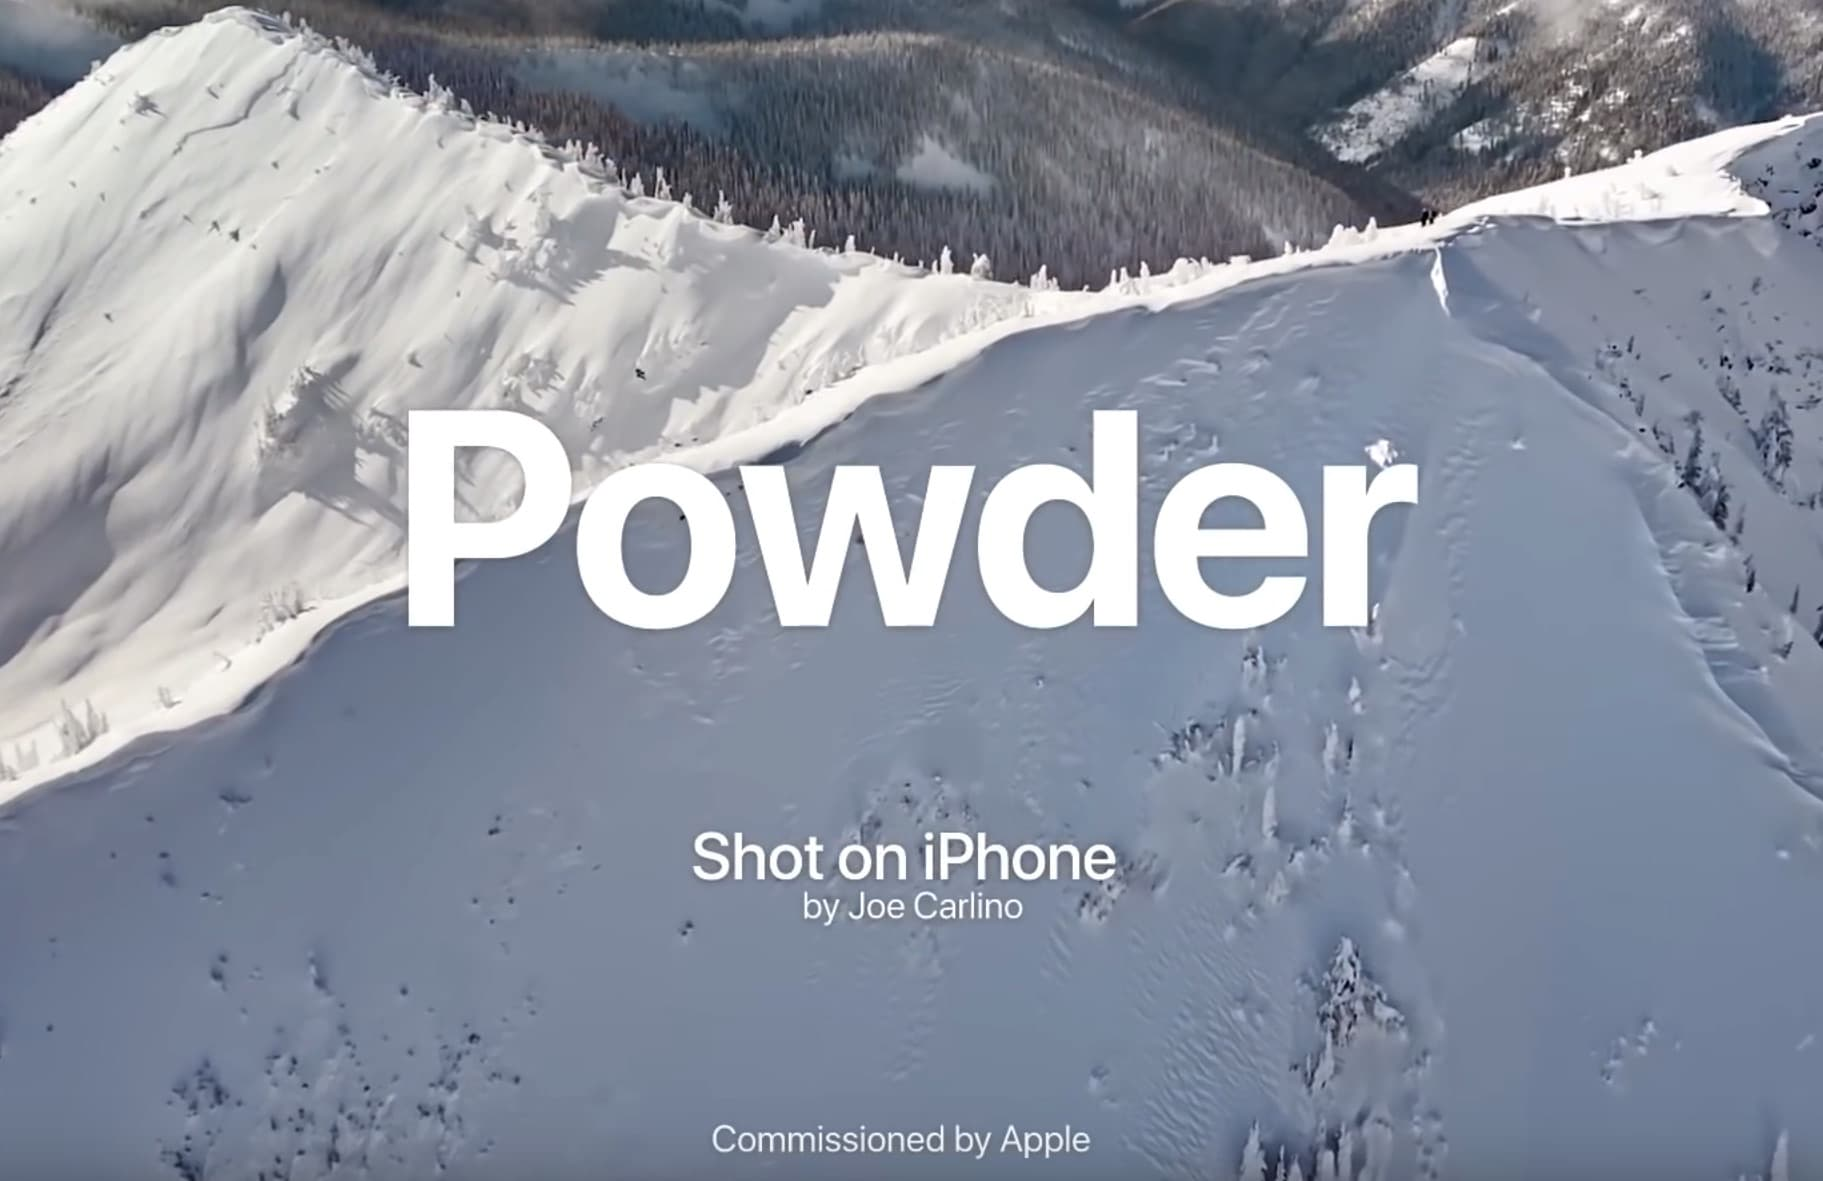 Exclusive: Videographer behind latest Apple ad talks shooting snowboarding on iPhone